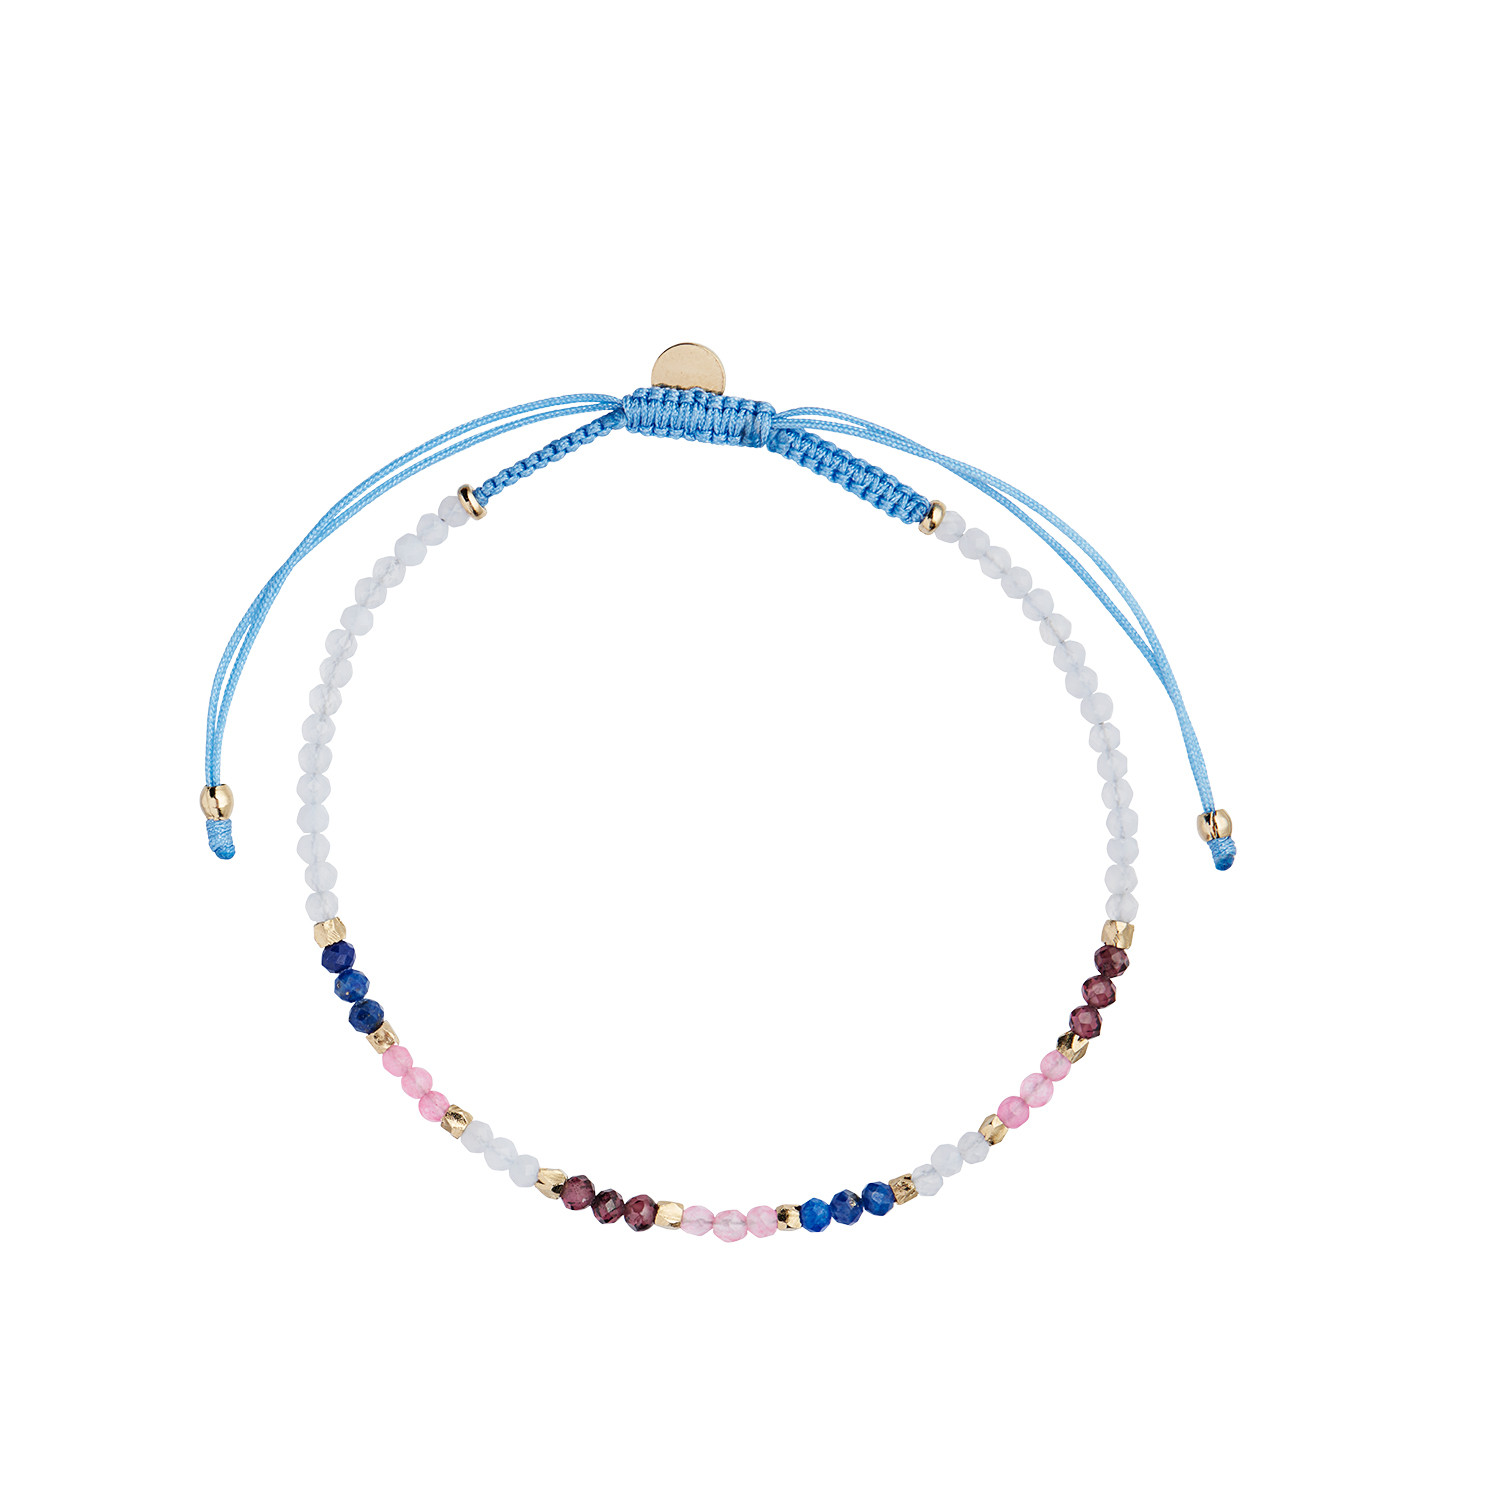 Iceblue Rainbow mix with Blue Chalcedony, Garnet, Lapis and Pink Jade